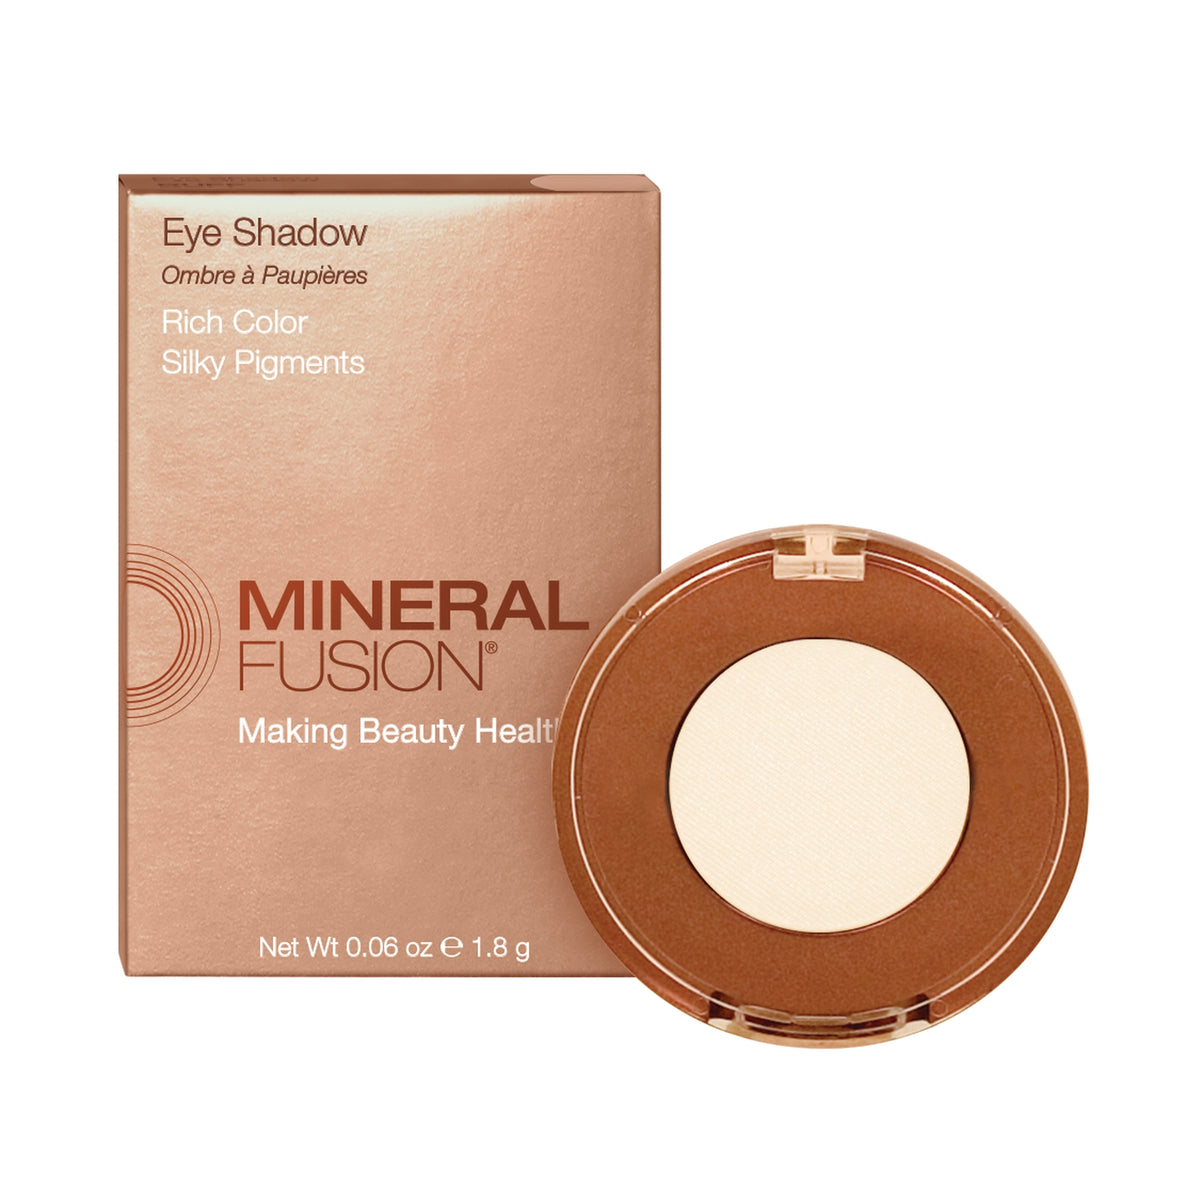 Mineral Fusion Eye Shadow in Prism